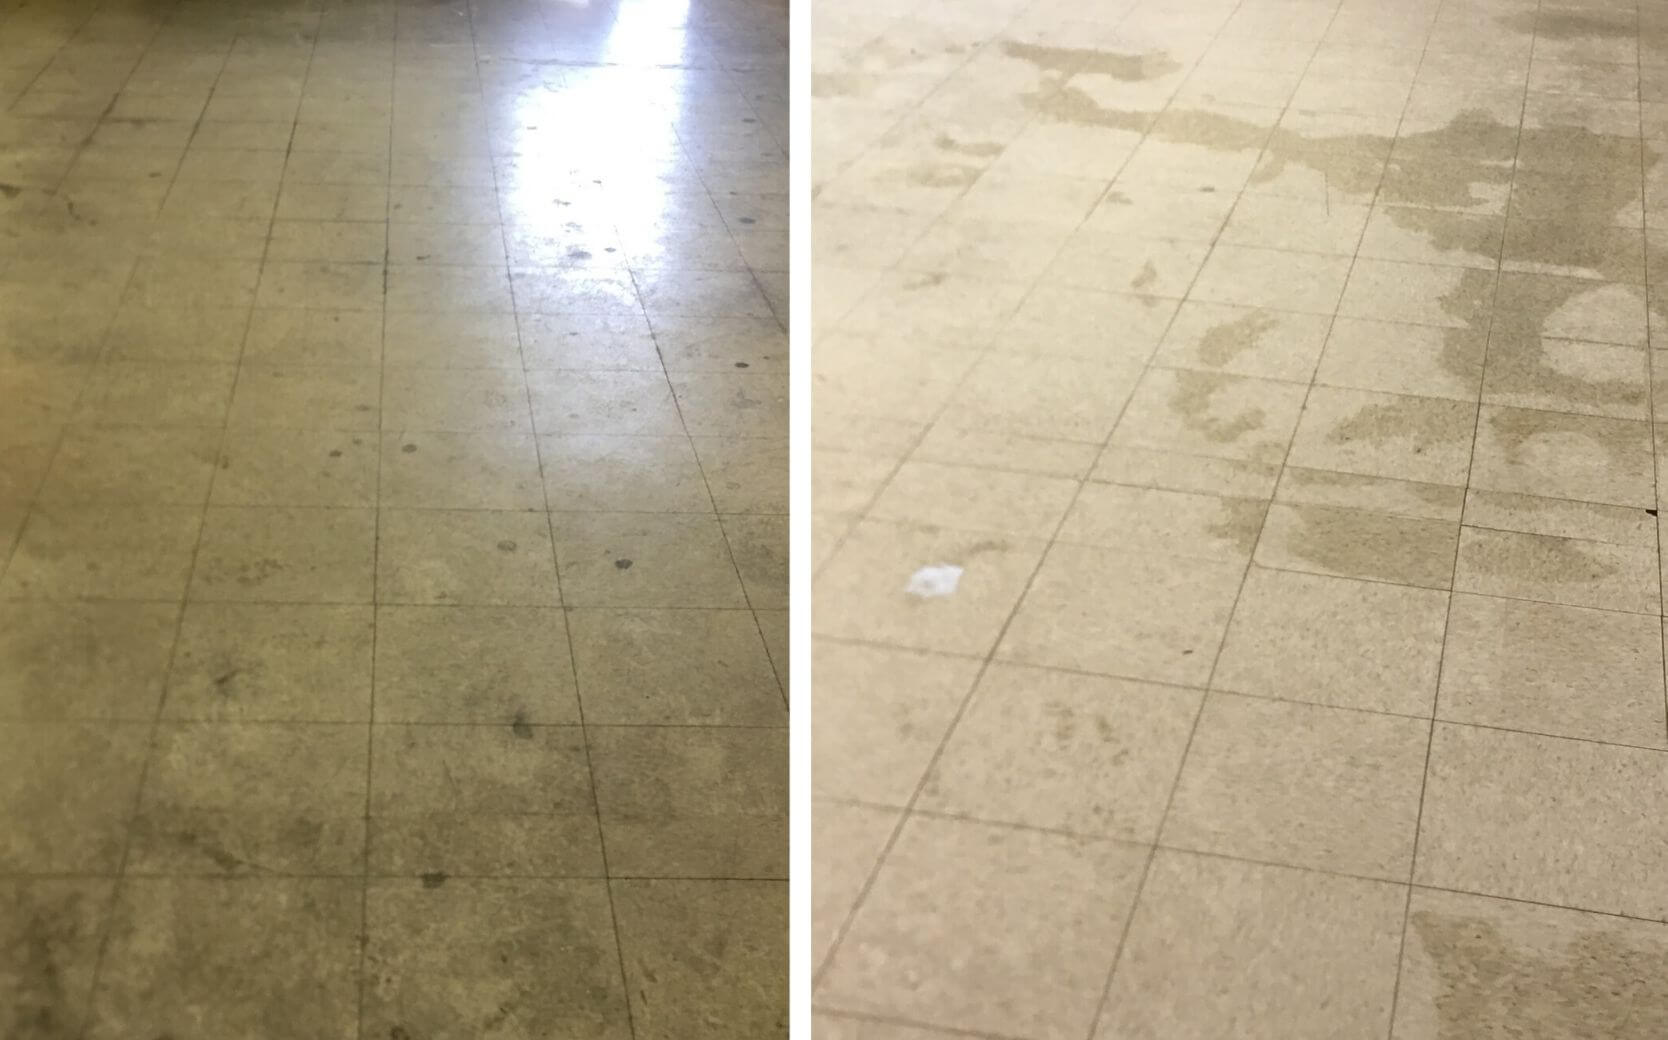 business floors after a vinyl composition tile cleaning in Altanta, GA